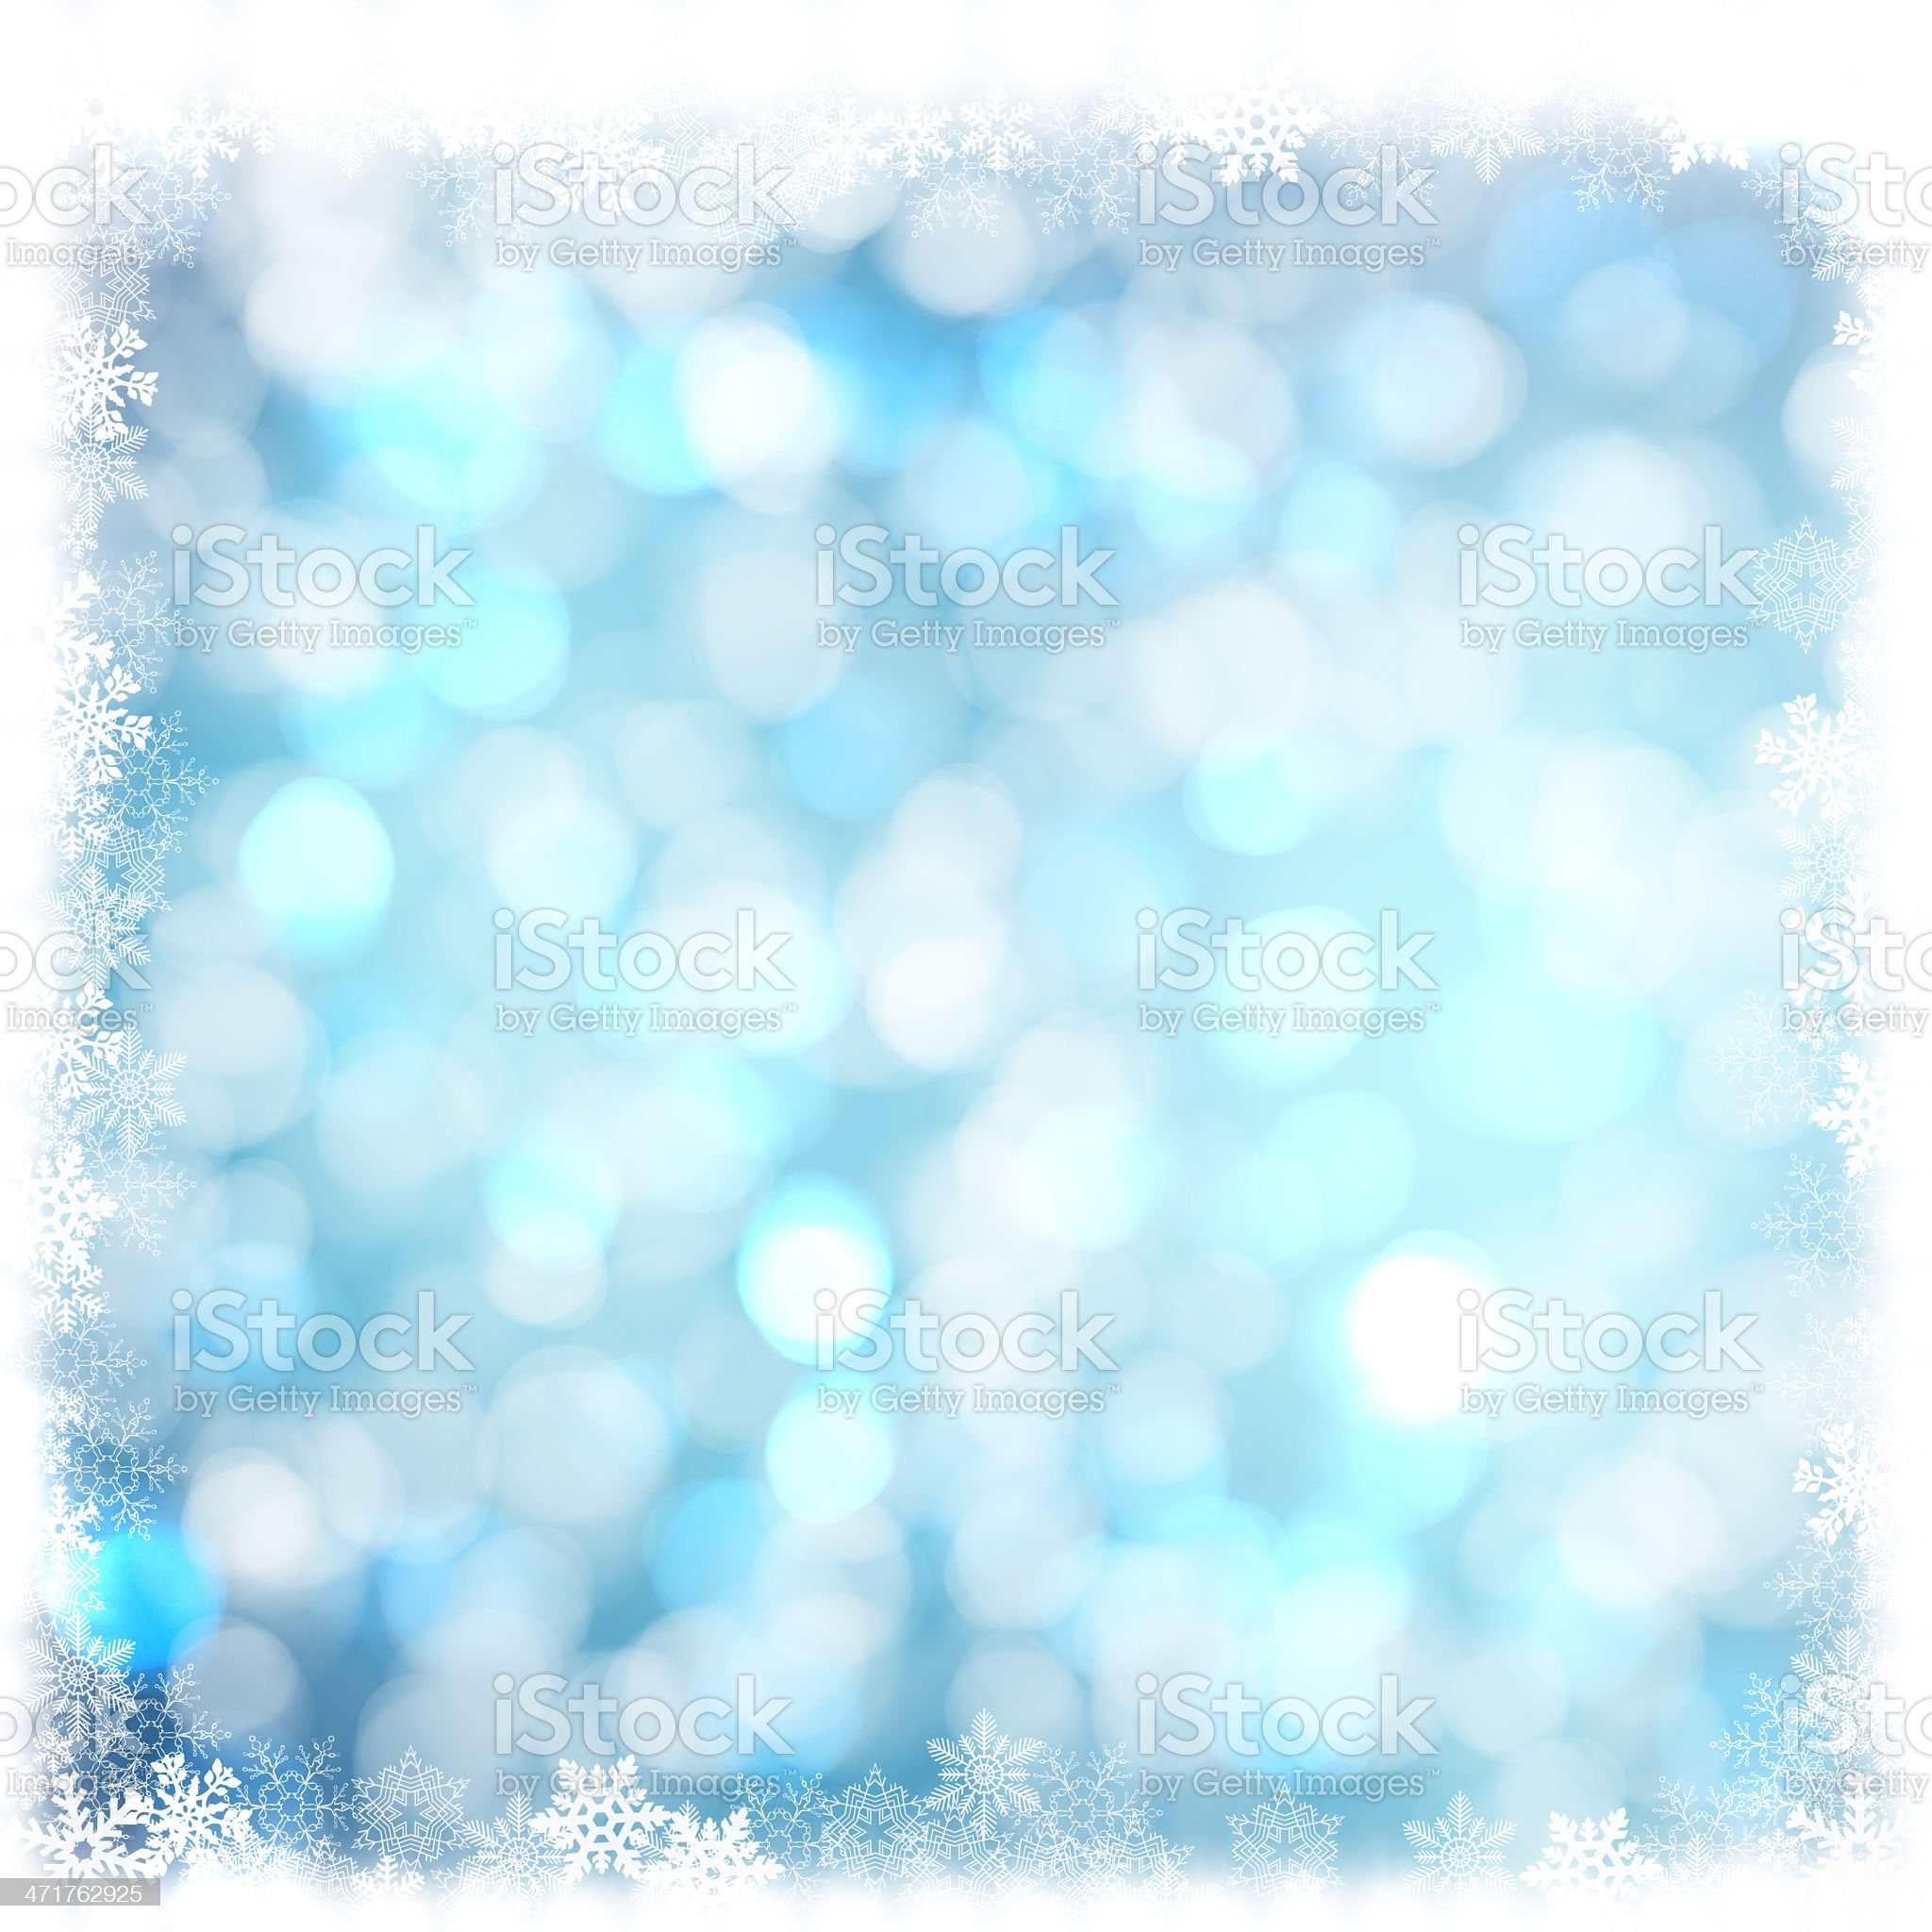 Christmas background with snowflakes in winter royalty-free stock vector art